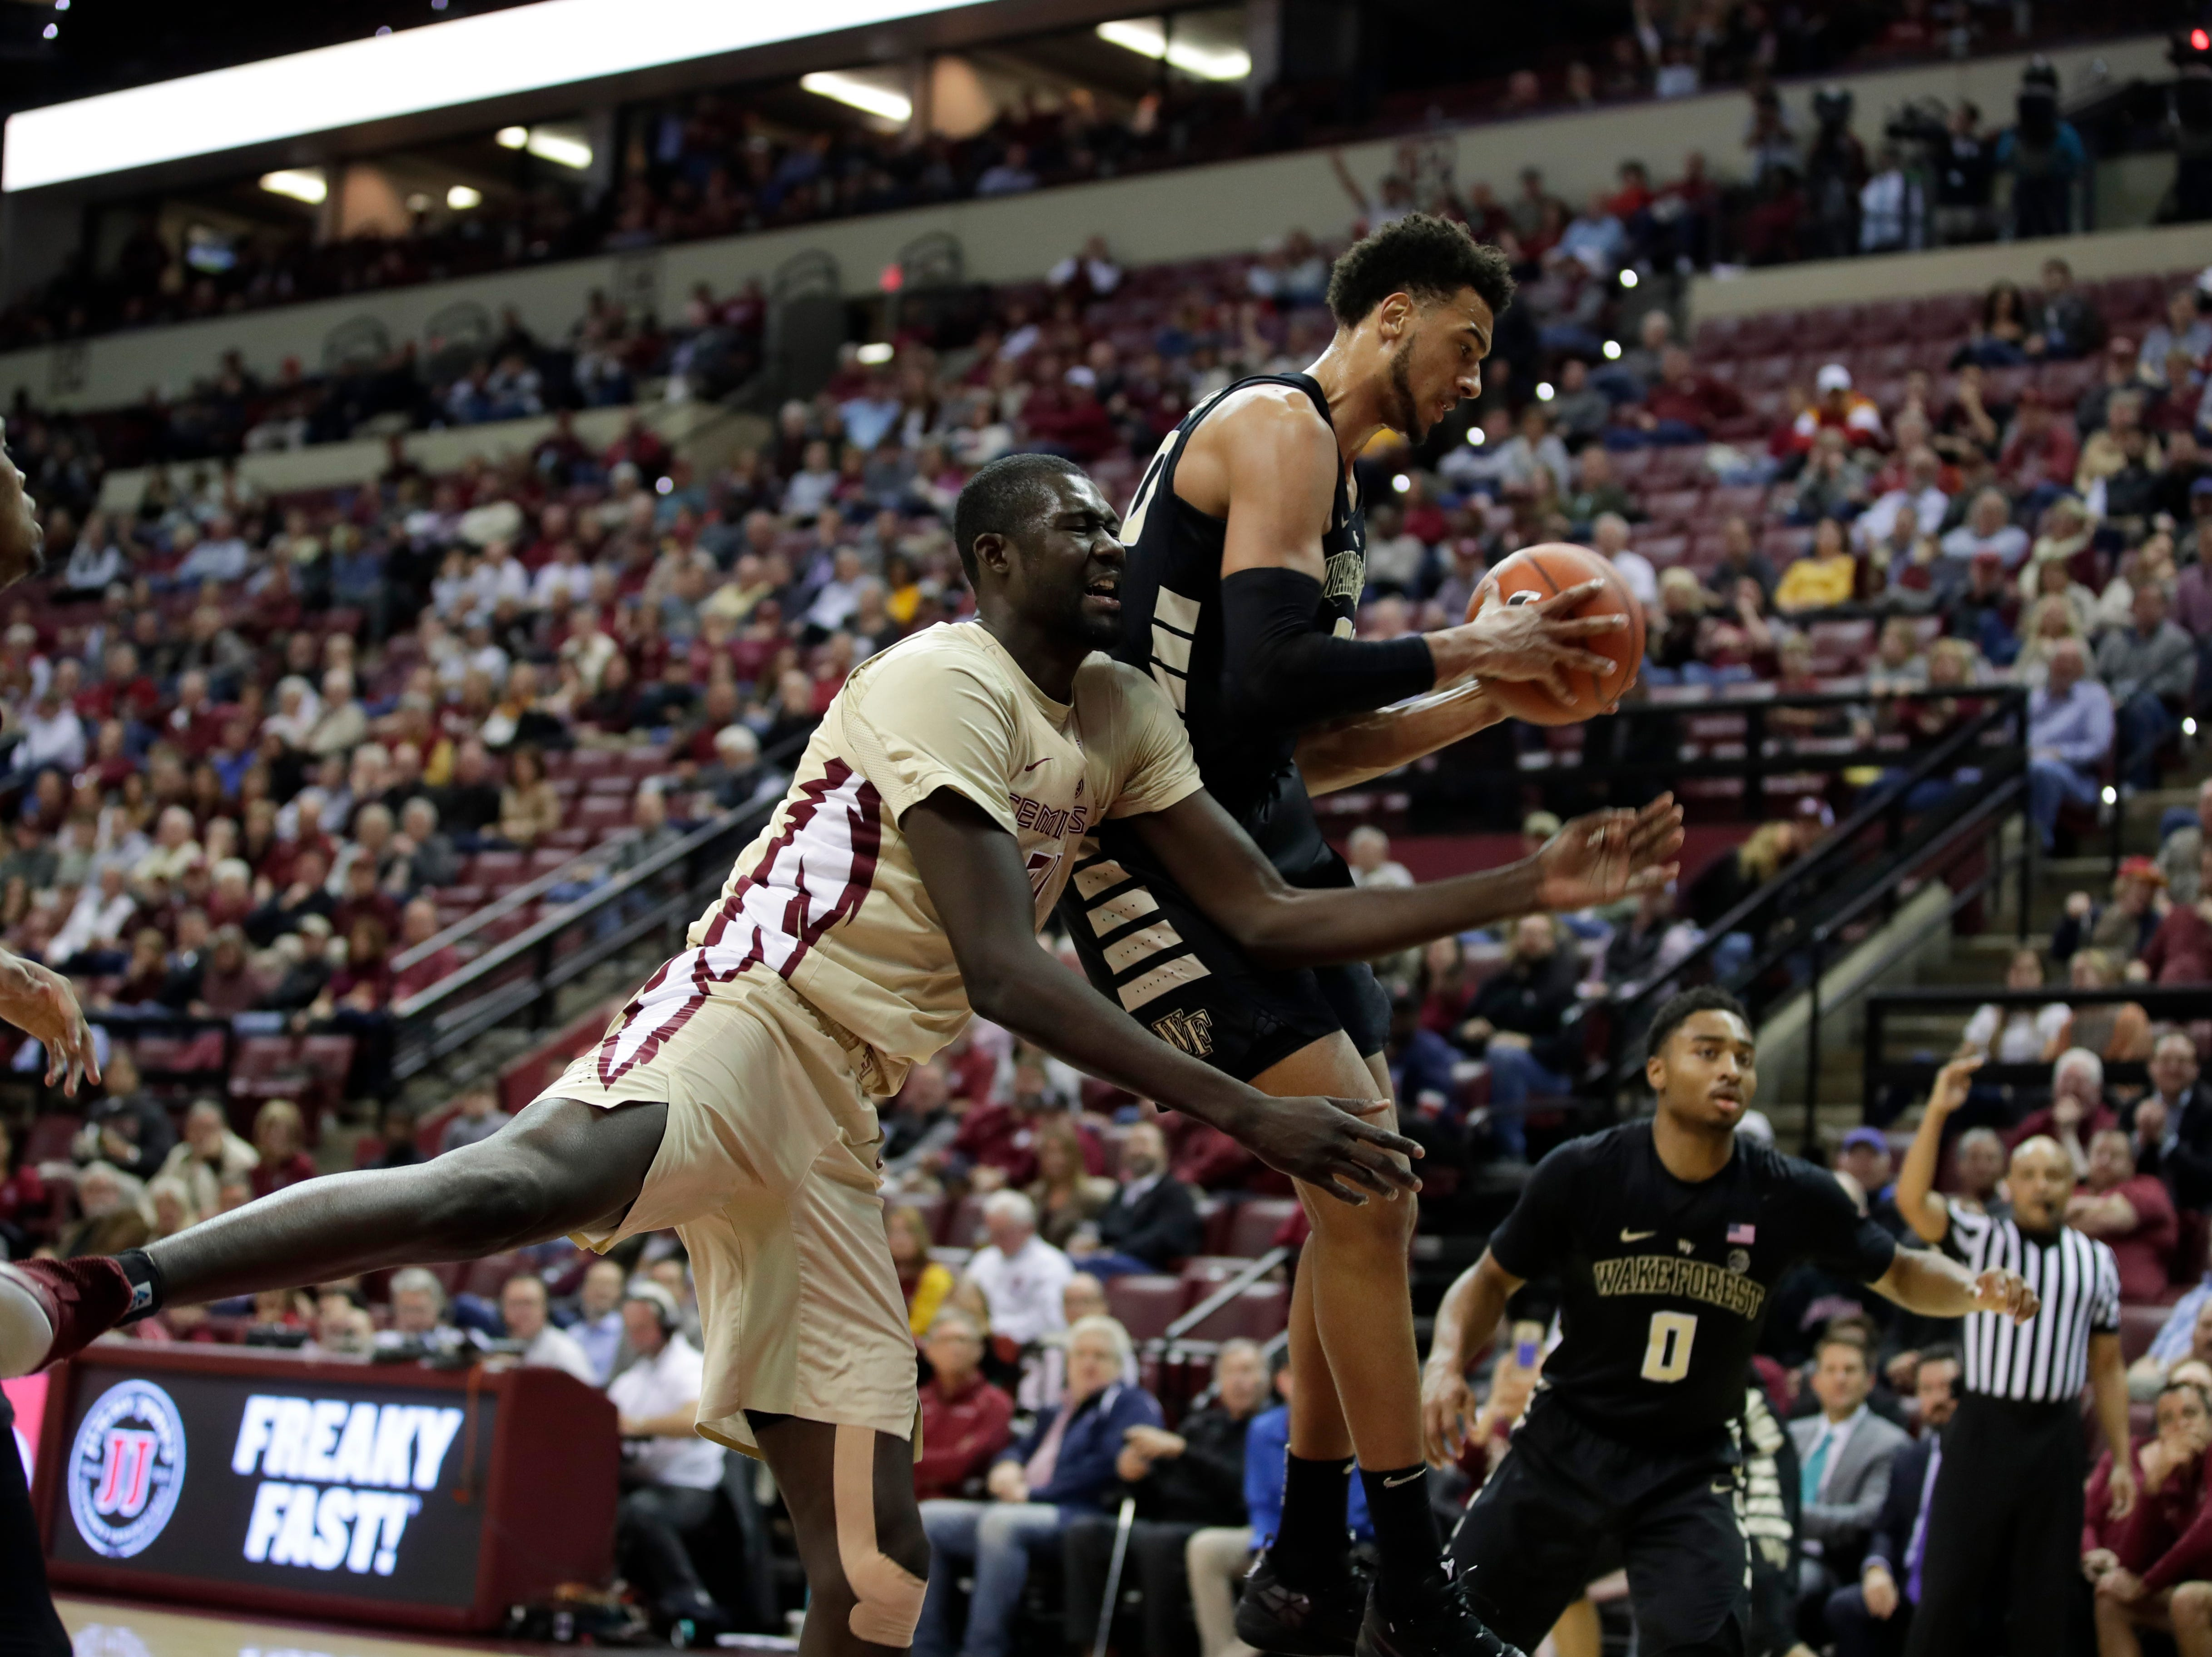 Florida State Seminoles center Christ Koumadje (21) misses a rebound during a game between FSU and Wake Forest at the Donald L. Tucker Civic Center Wednesday, Feb. 13, 2019.